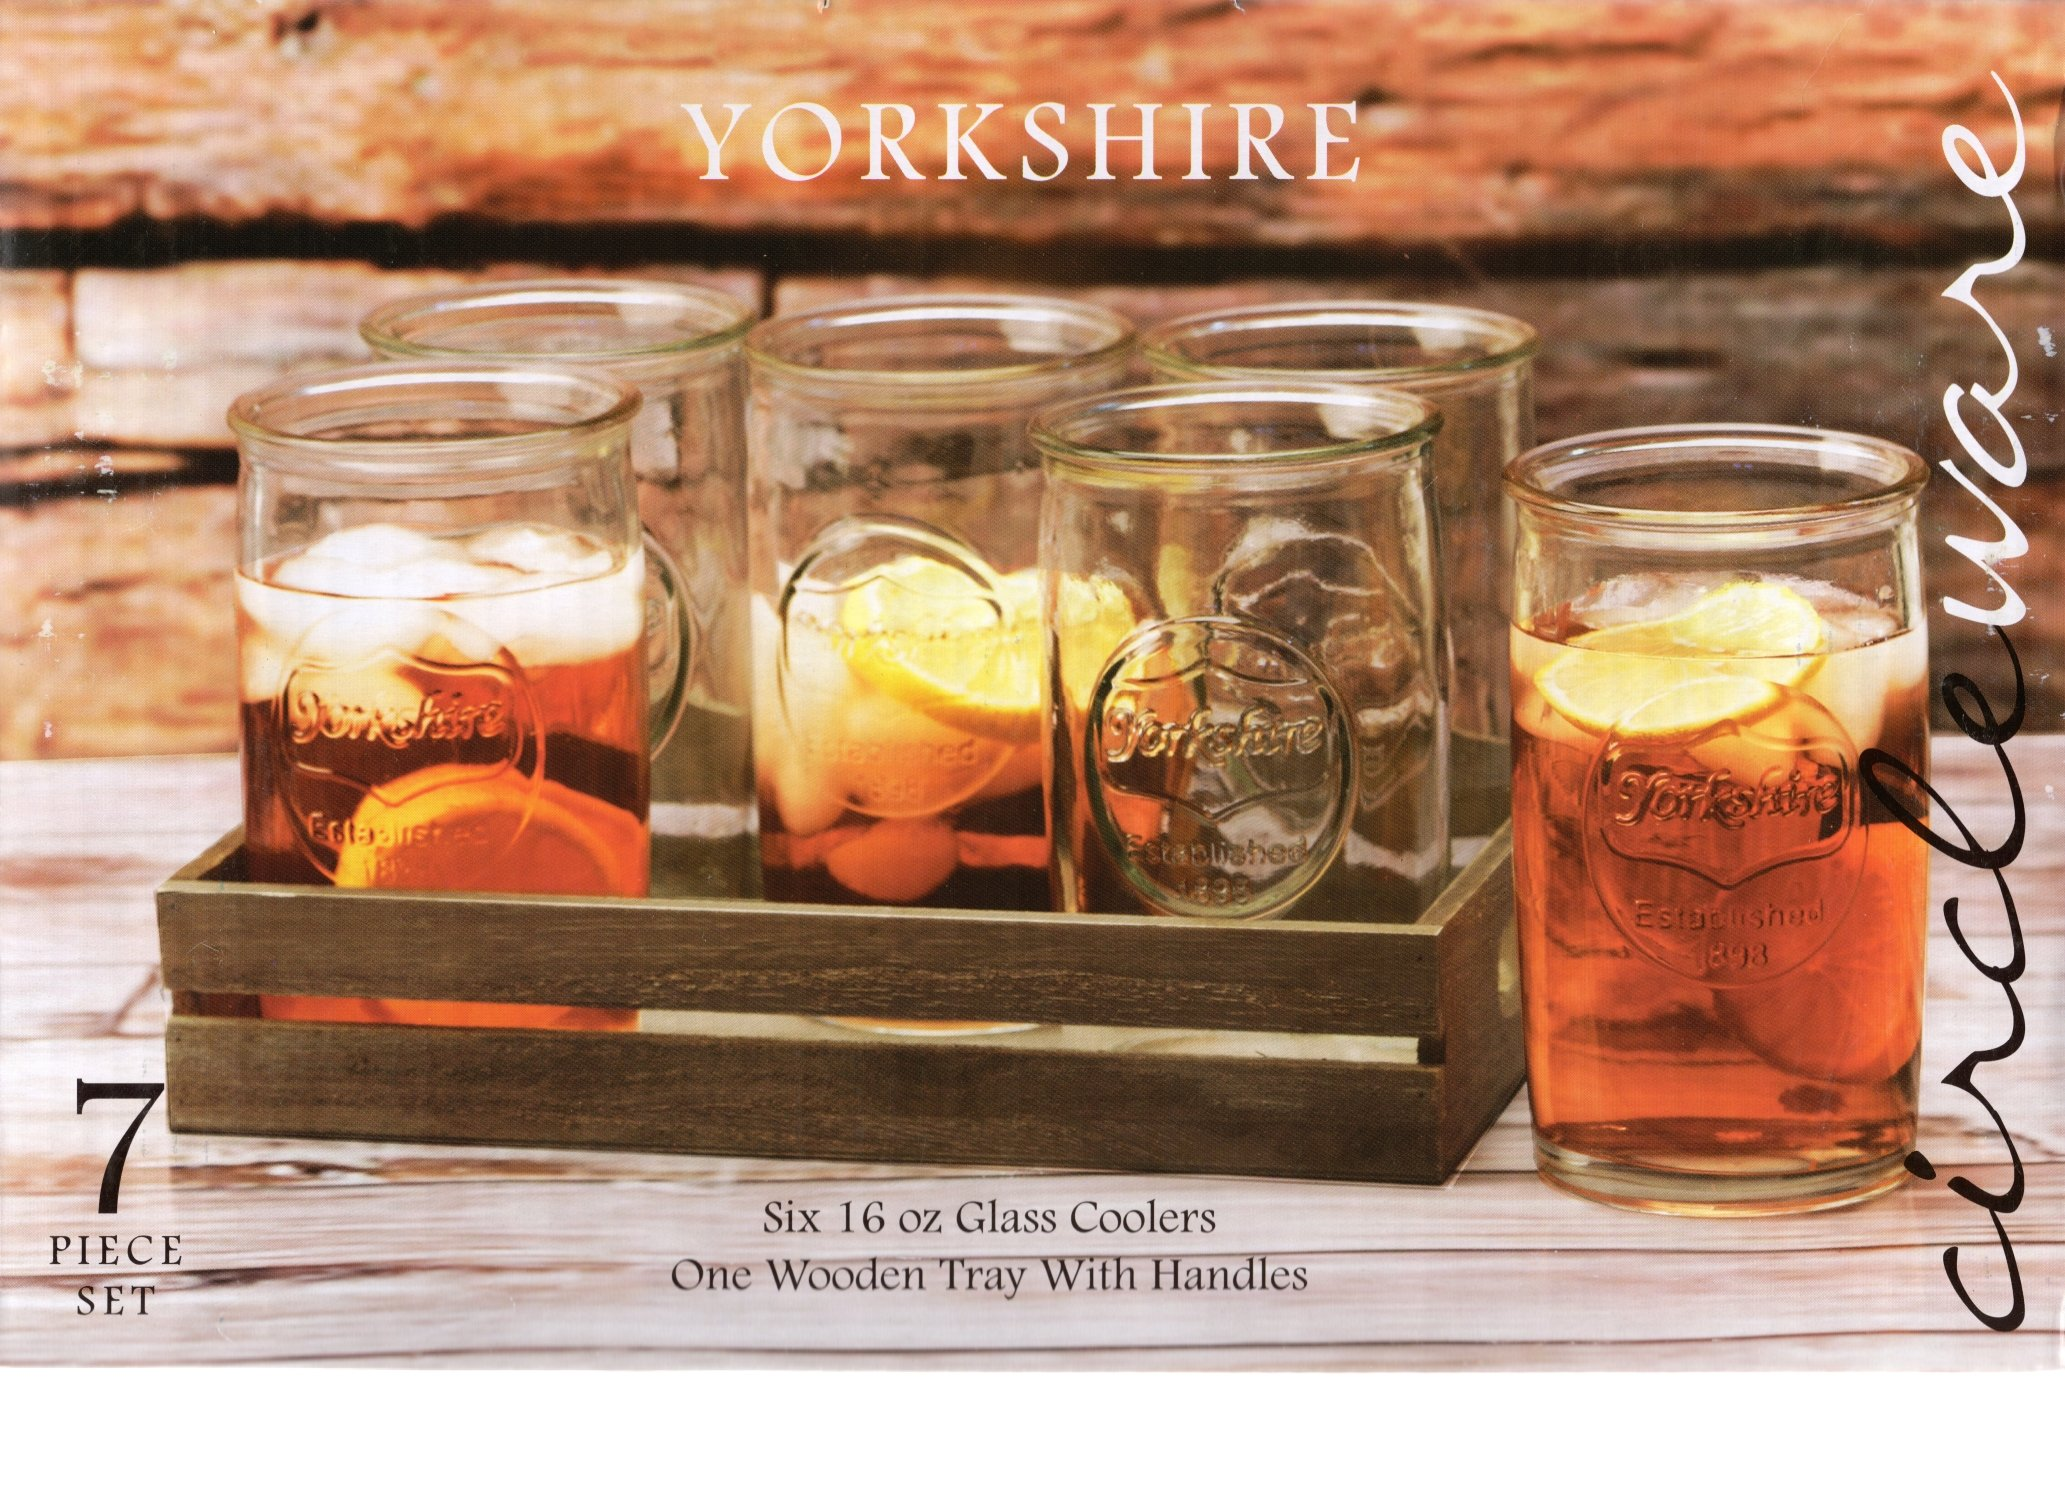 Circleware 69003 Yorkshire 7-Piece Set of 6 Beverage Cooler Drinking Glasses & Wood Tray with Handles, Home Kitchen Tumbler Cups for Water, Milk, Juice, Beer, Ice Tea, Farmhouse Decor 16 oz Clear by Circleware